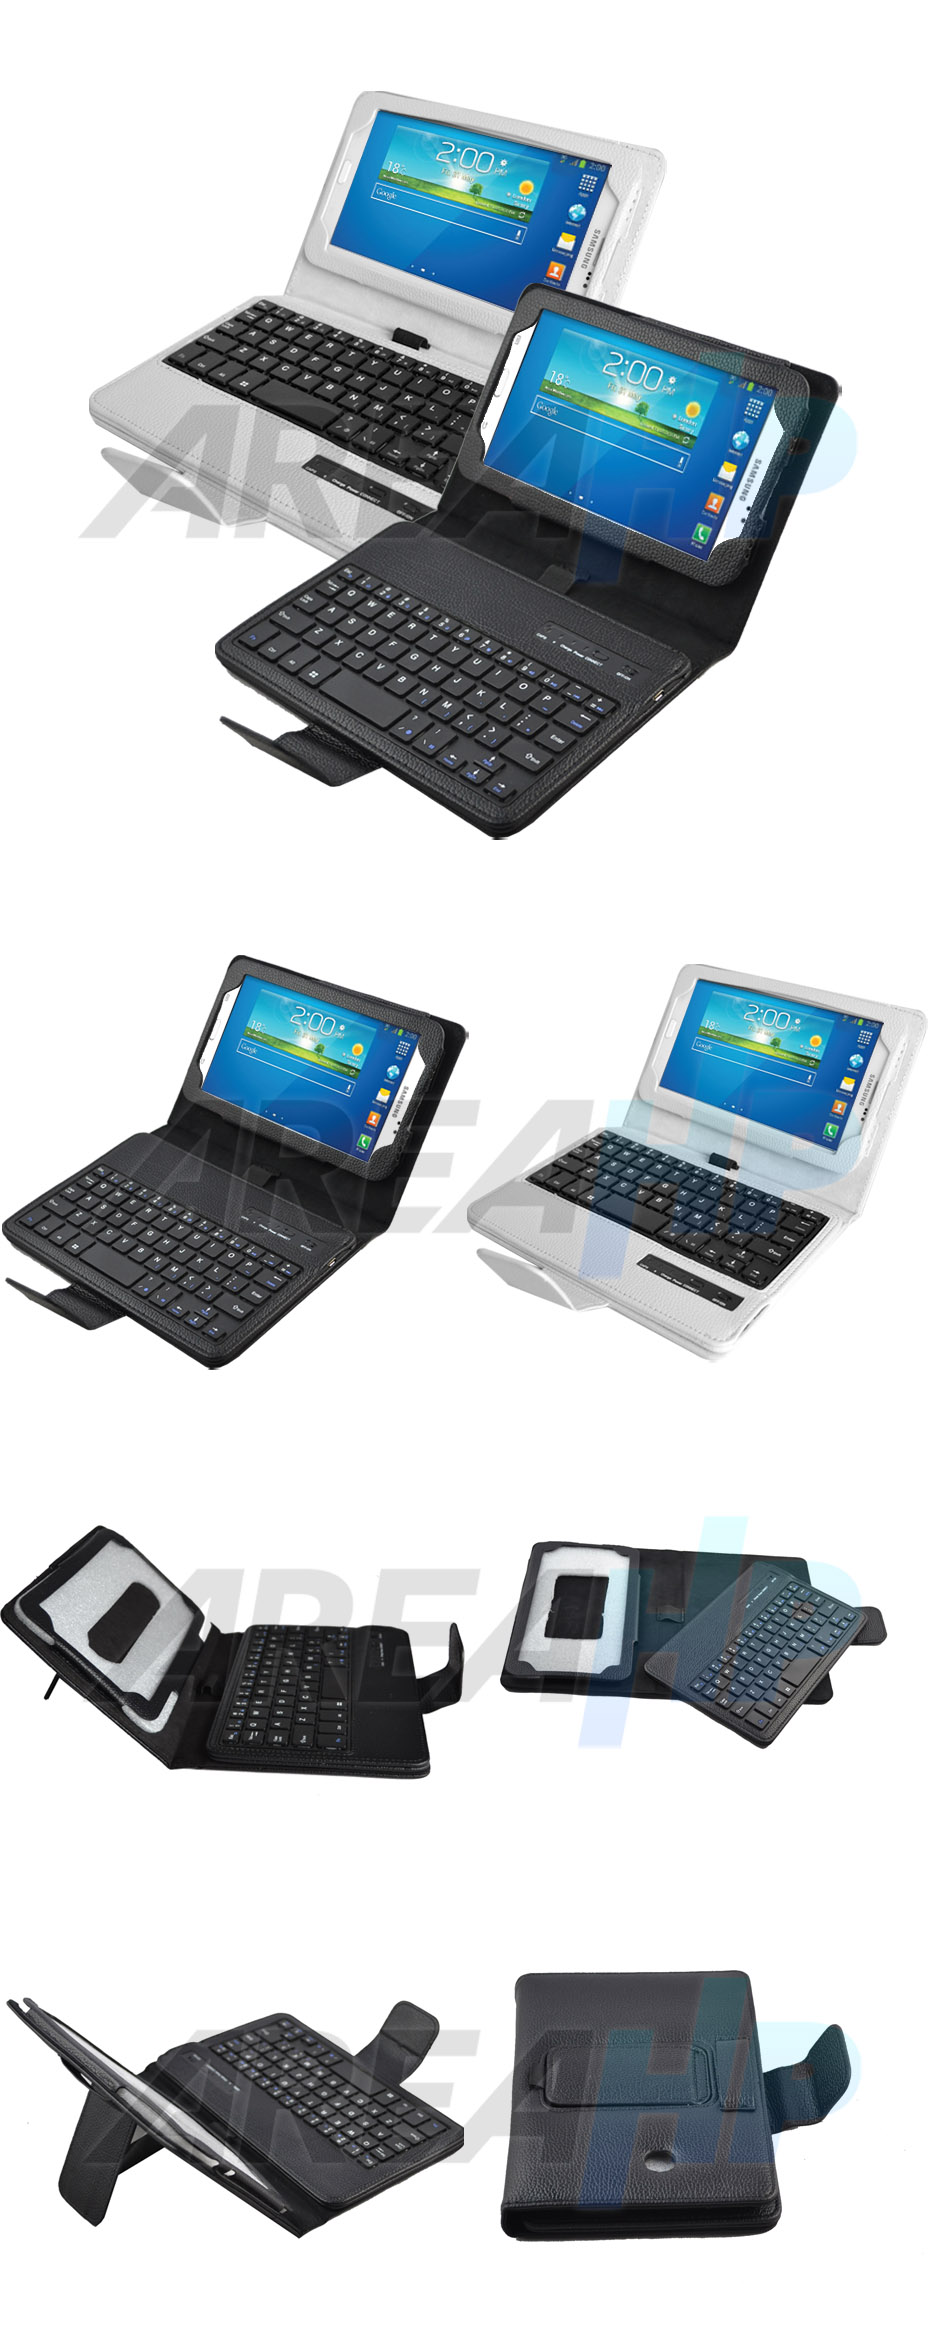 Removable Keyboard Leather Case for Samsung Galaxy Tab3 7.0 P3200 Overview